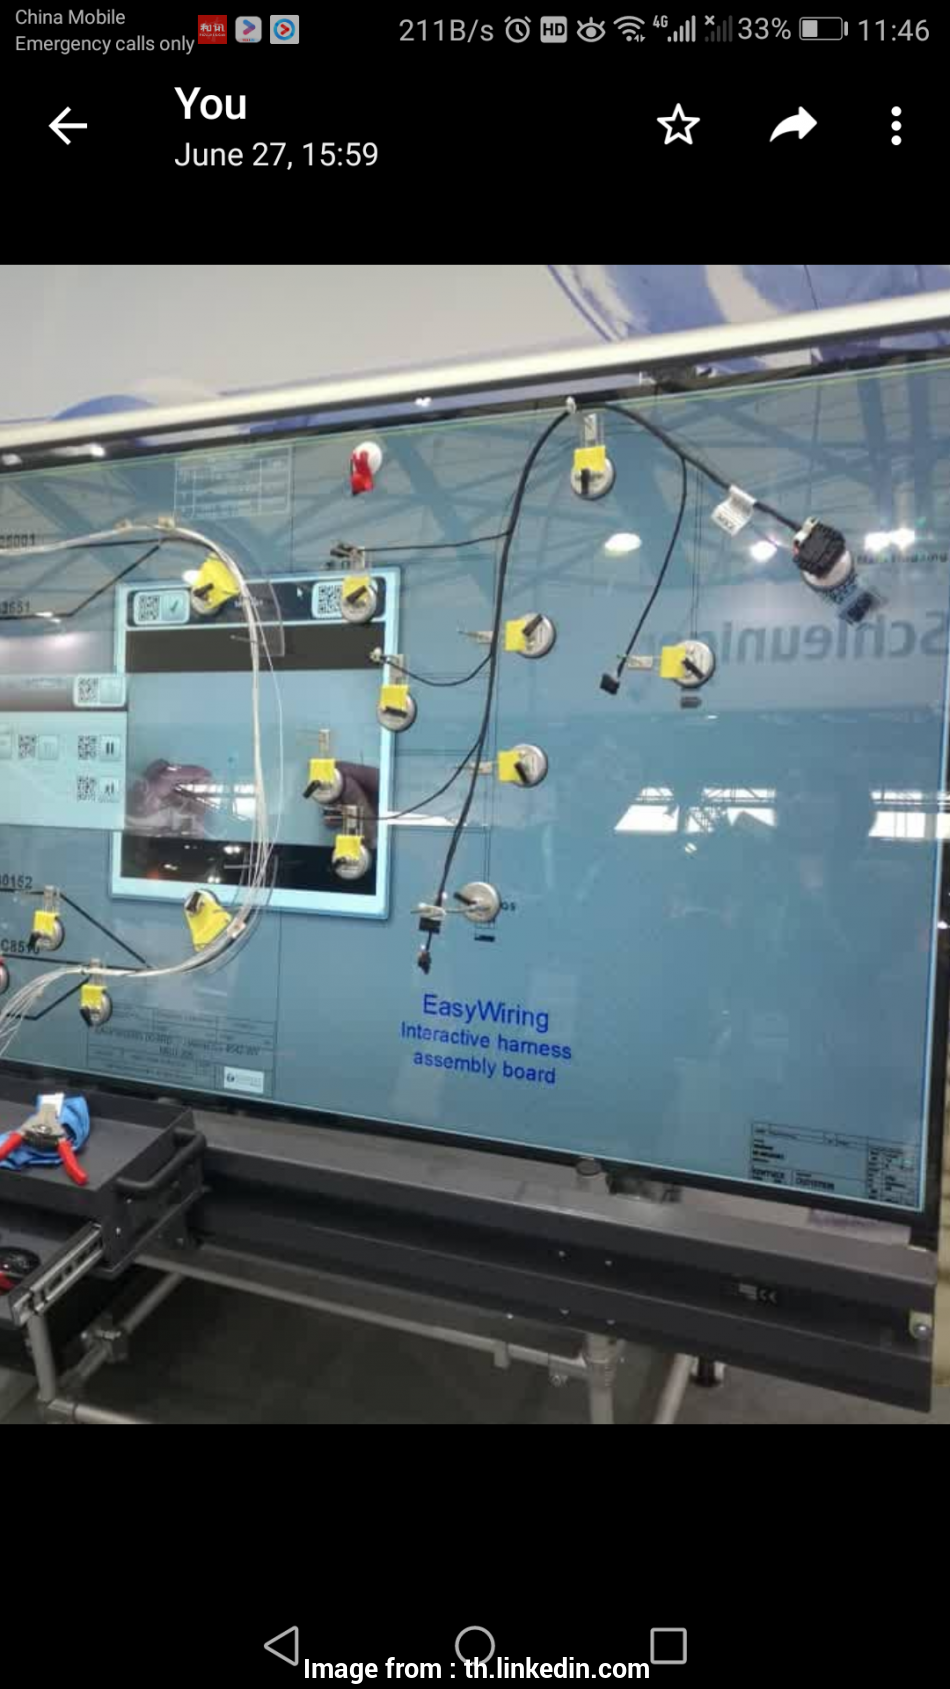 sumitomo electric wiring systems thailand ltd ราชบุรี Kaung Htet, Production Engineer, Sumitomo Electric Wiring 13 Best Sumitomo Electric Wiring Systems Thailand, ราชบุรี Solutions